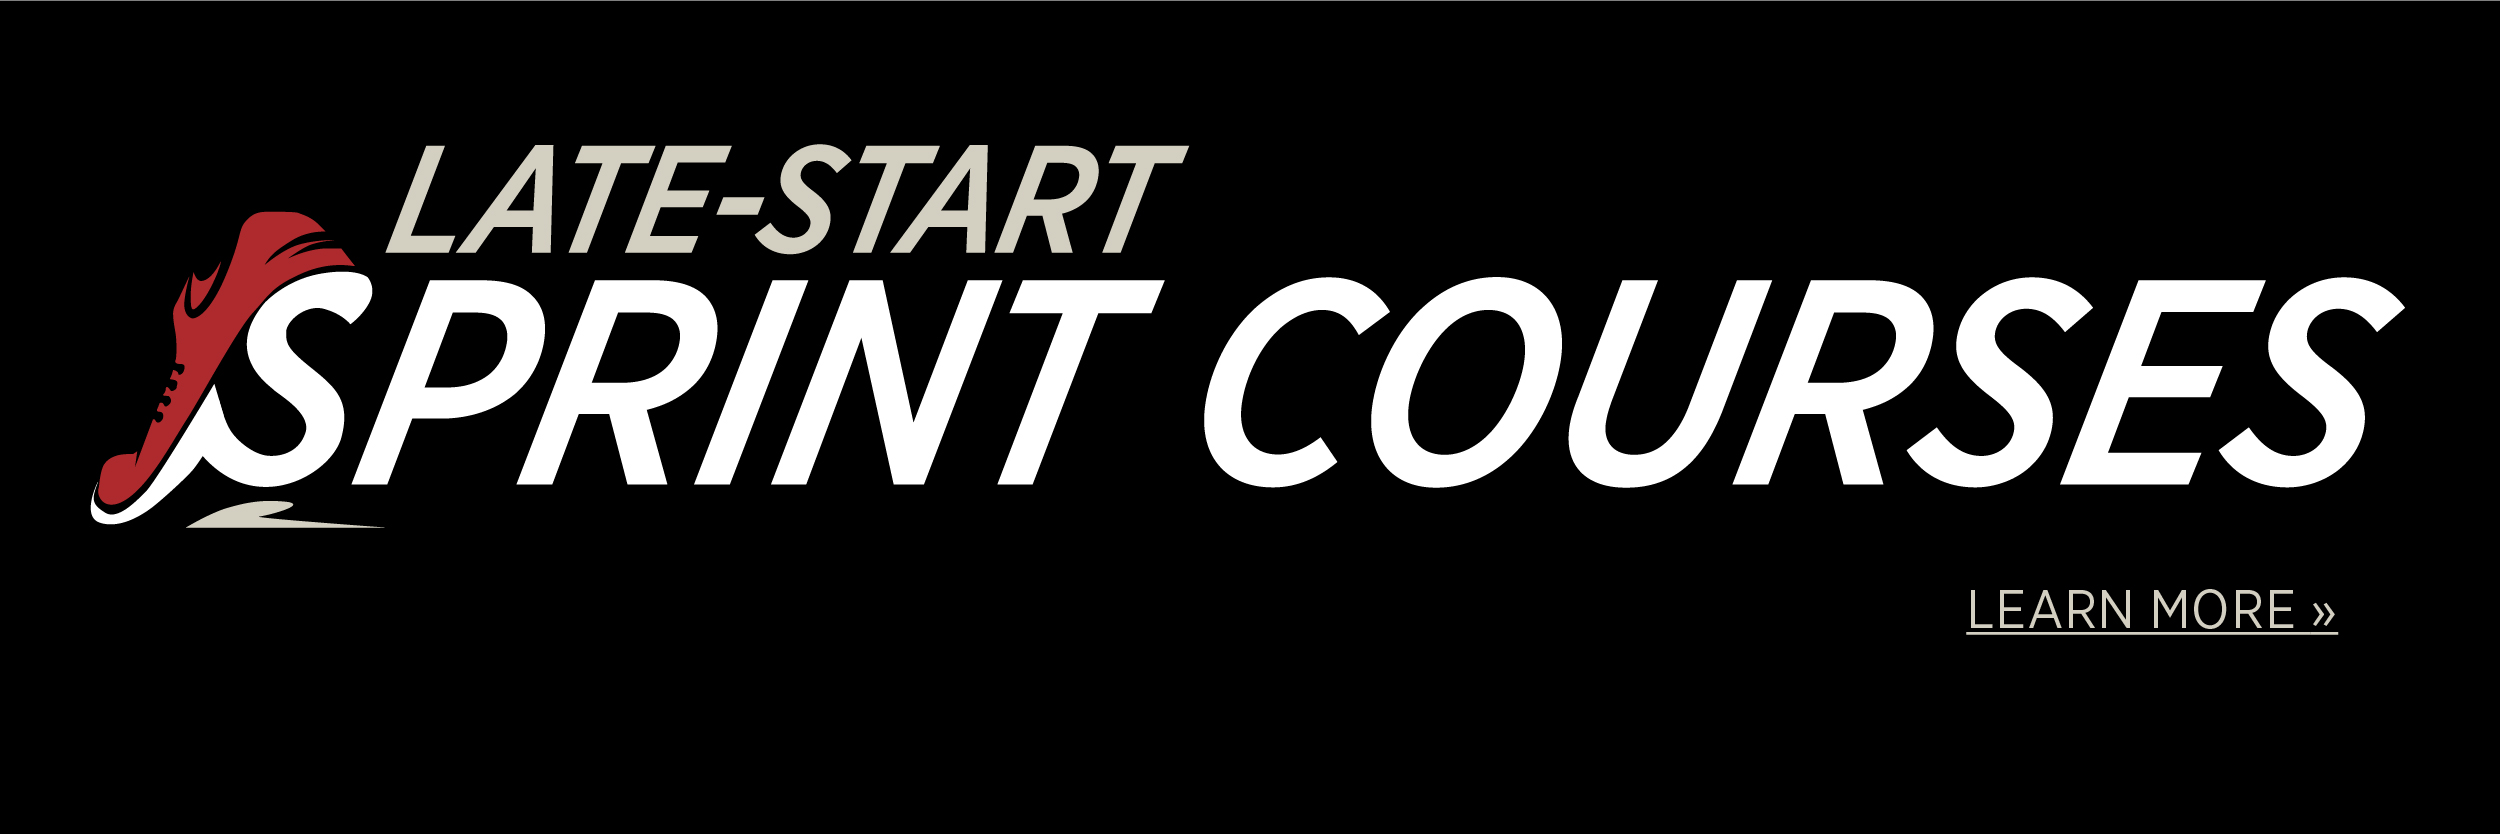 Late Start Sprint Courses. Learn More.